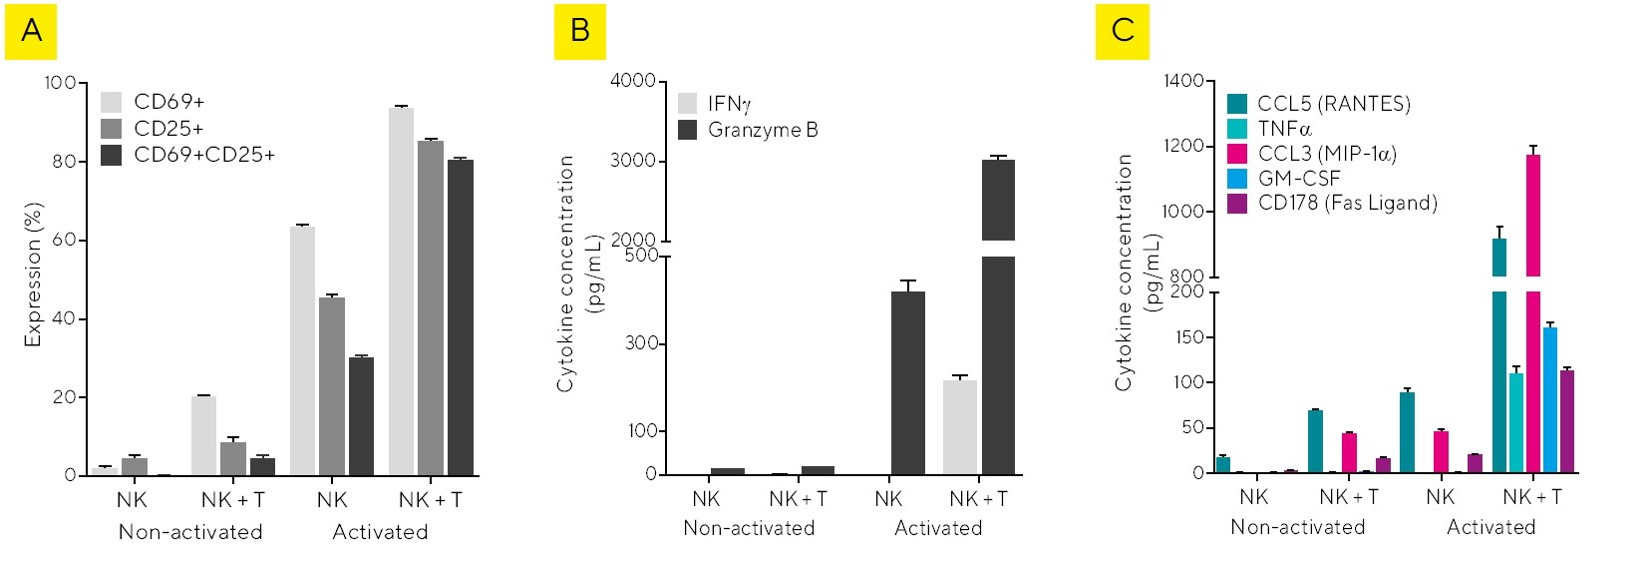 Immunology NK Cells Fig 4